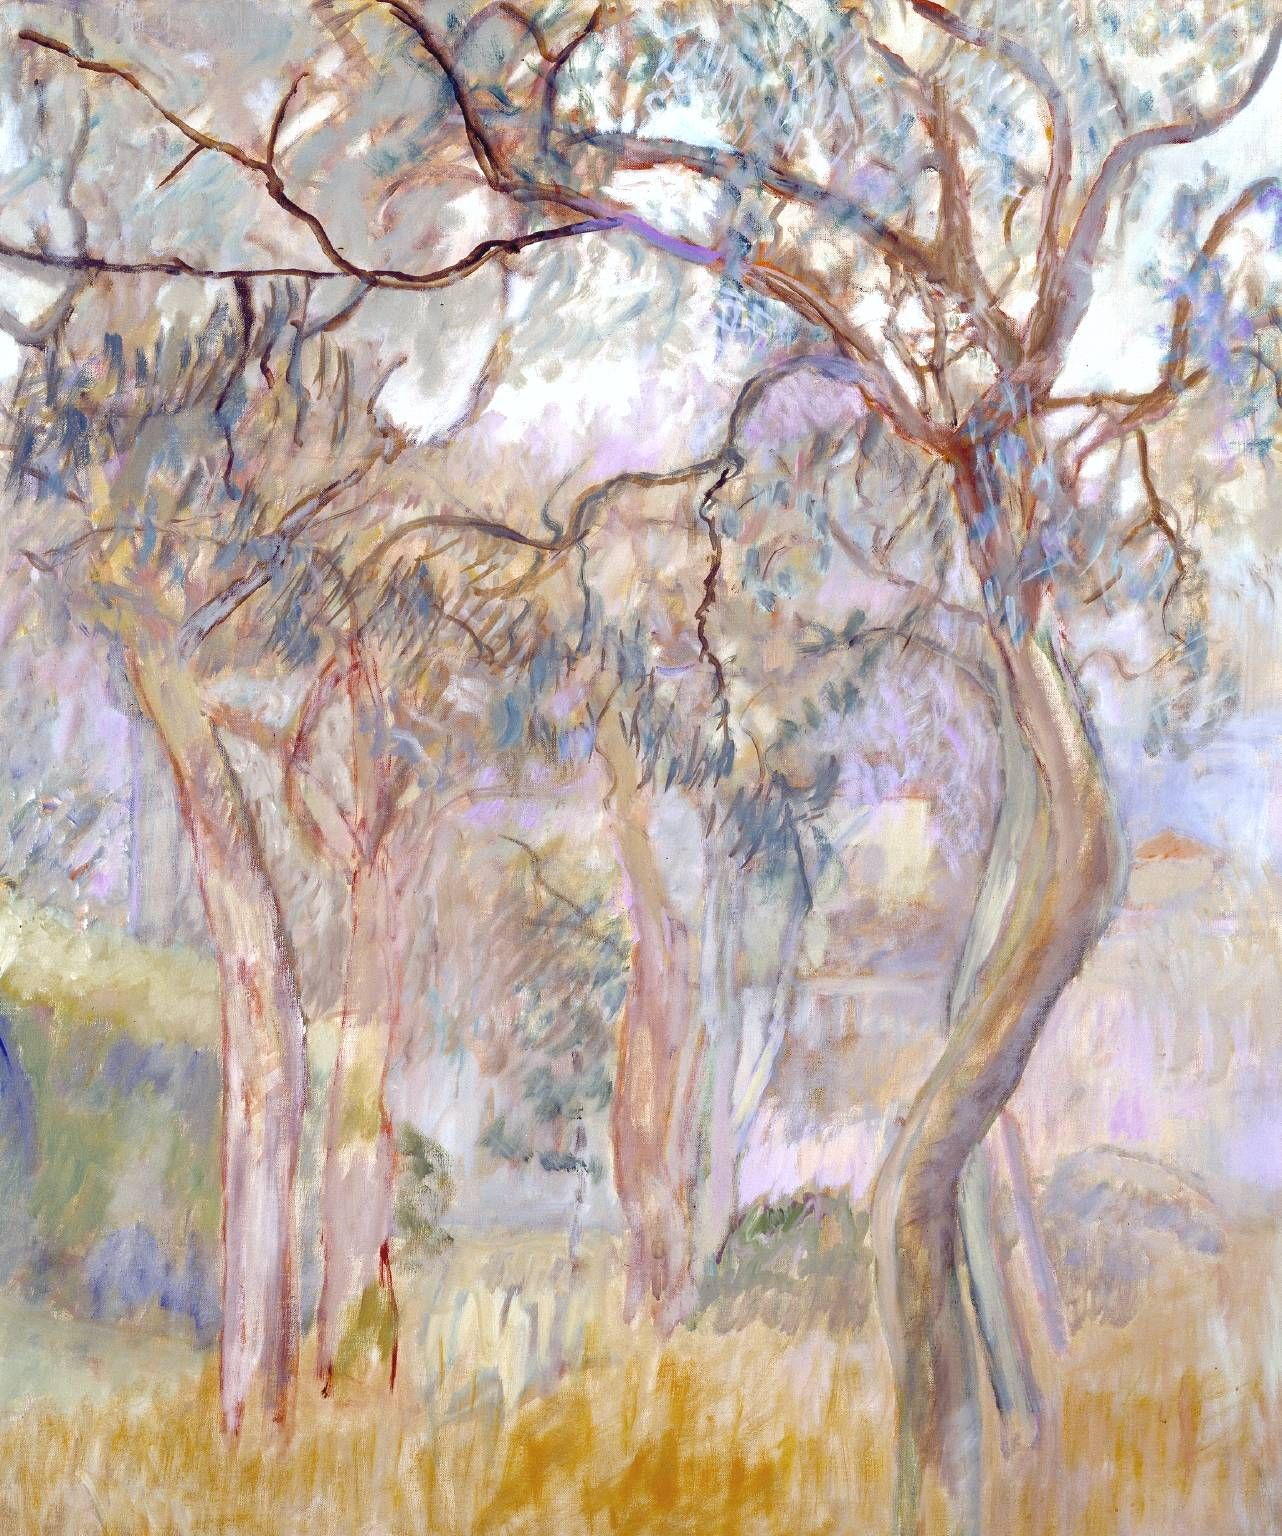 Adrian Stokes. 'Olive Trees'. Oil on canvas. 1958.